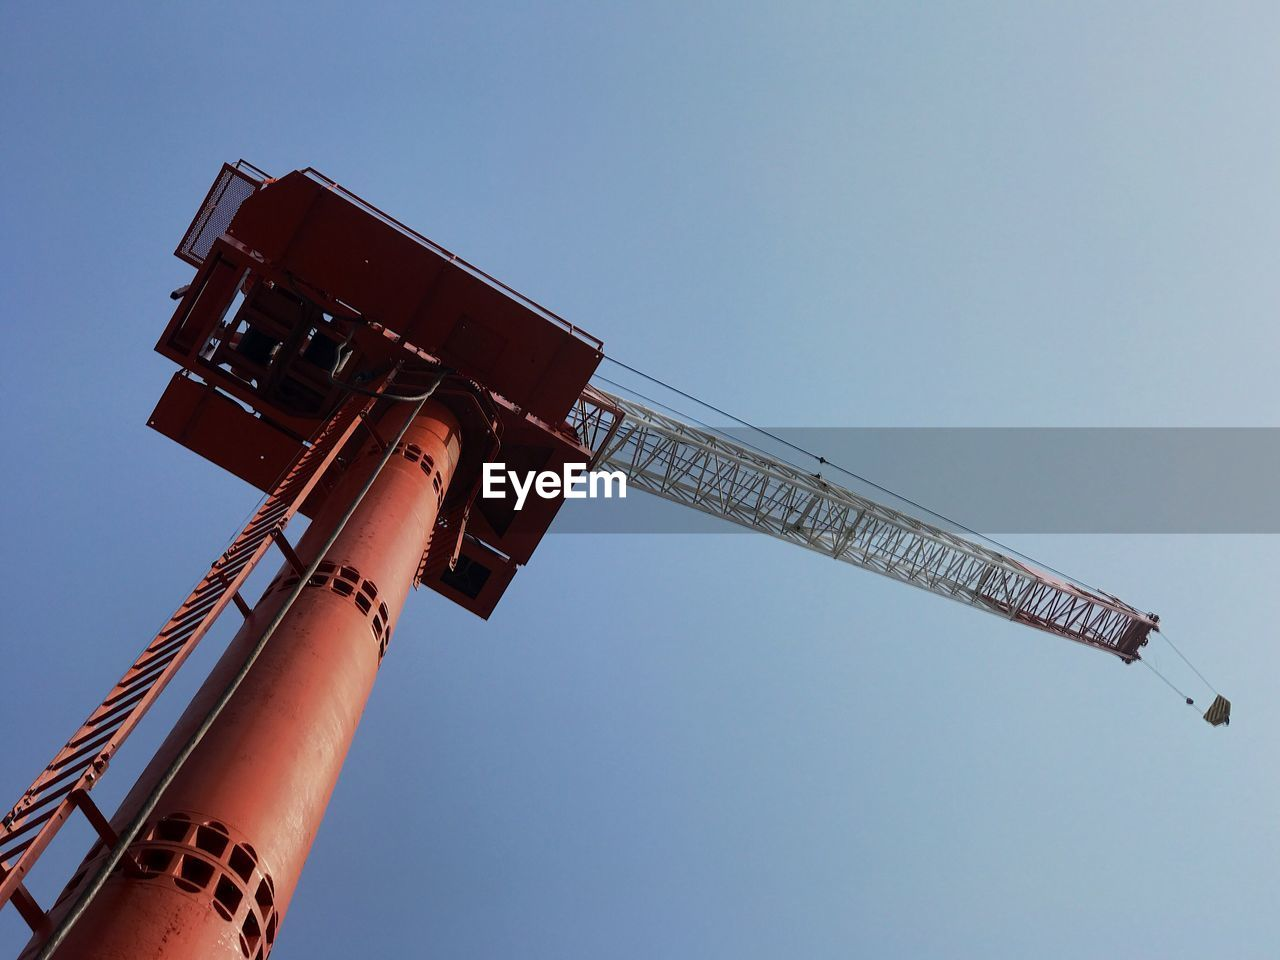 sky, low angle view, clear sky, machinery, industry, nature, day, crane - construction machinery, construction industry, metal, blue, architecture, outdoors, copy space, built structure, construction equipment, no people, tall - high, sunlight, red, place